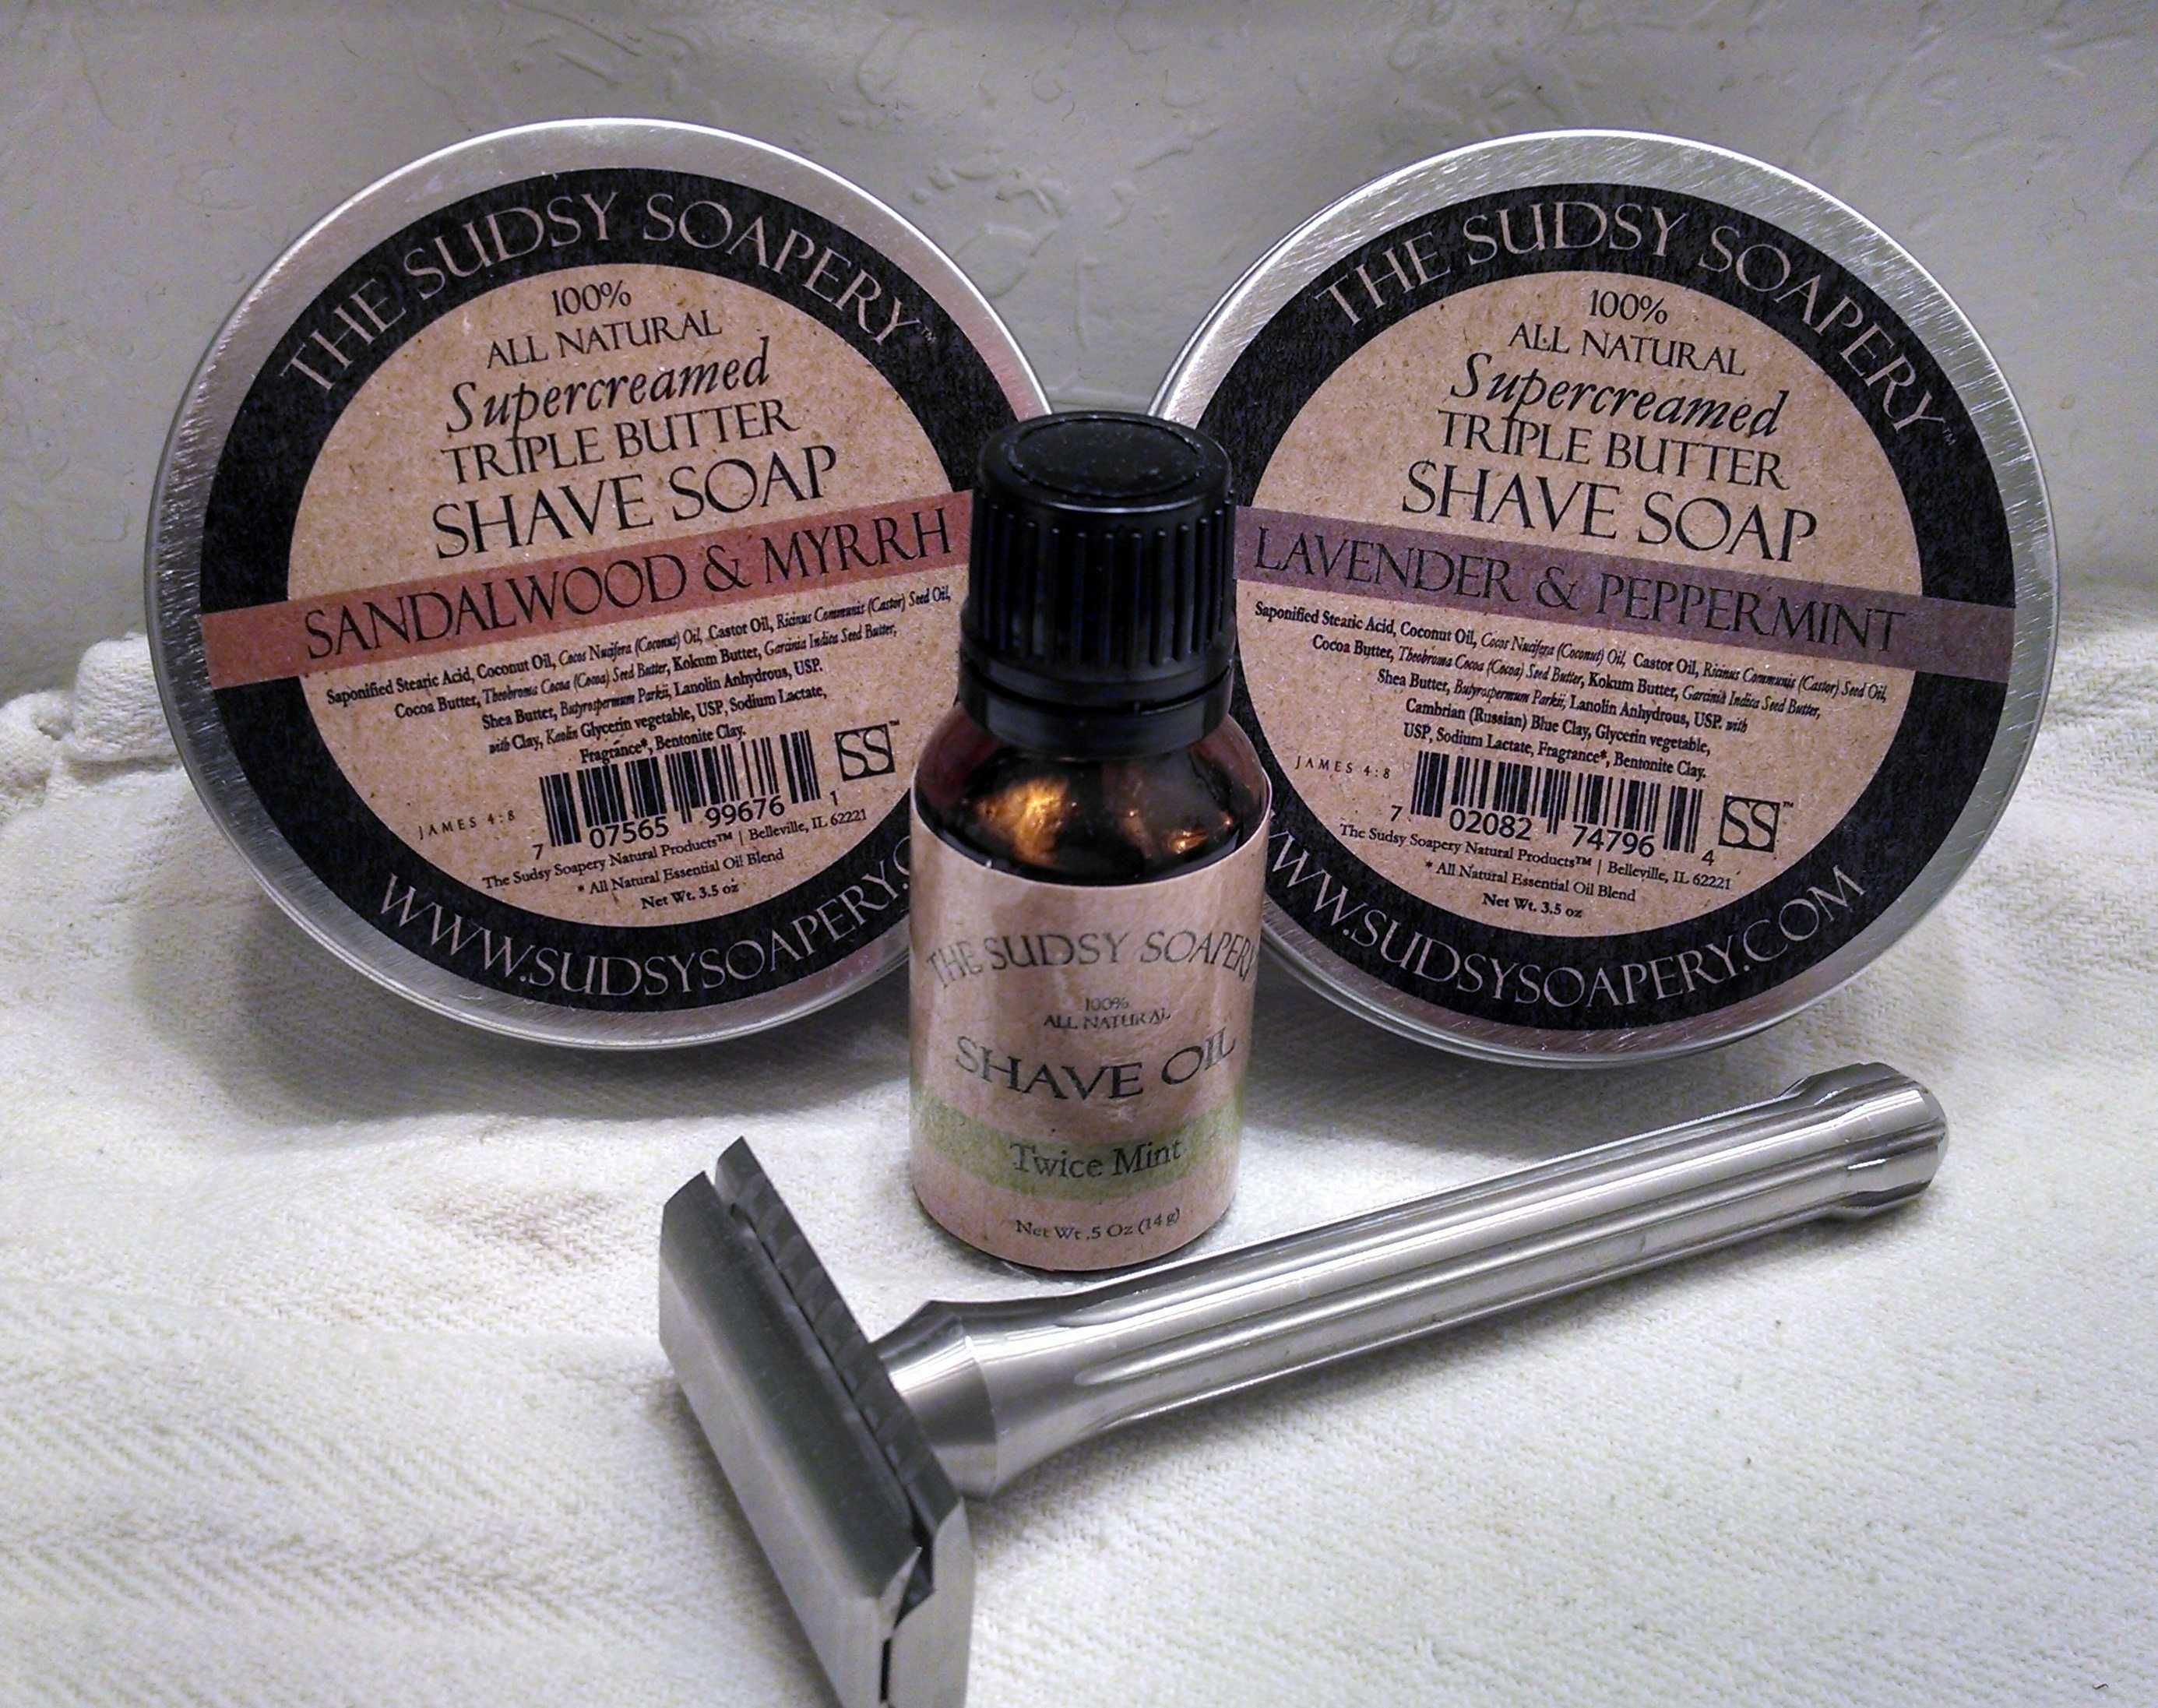 Sudsy Soapery Shaving Soap Review on WhyIWetShave.com